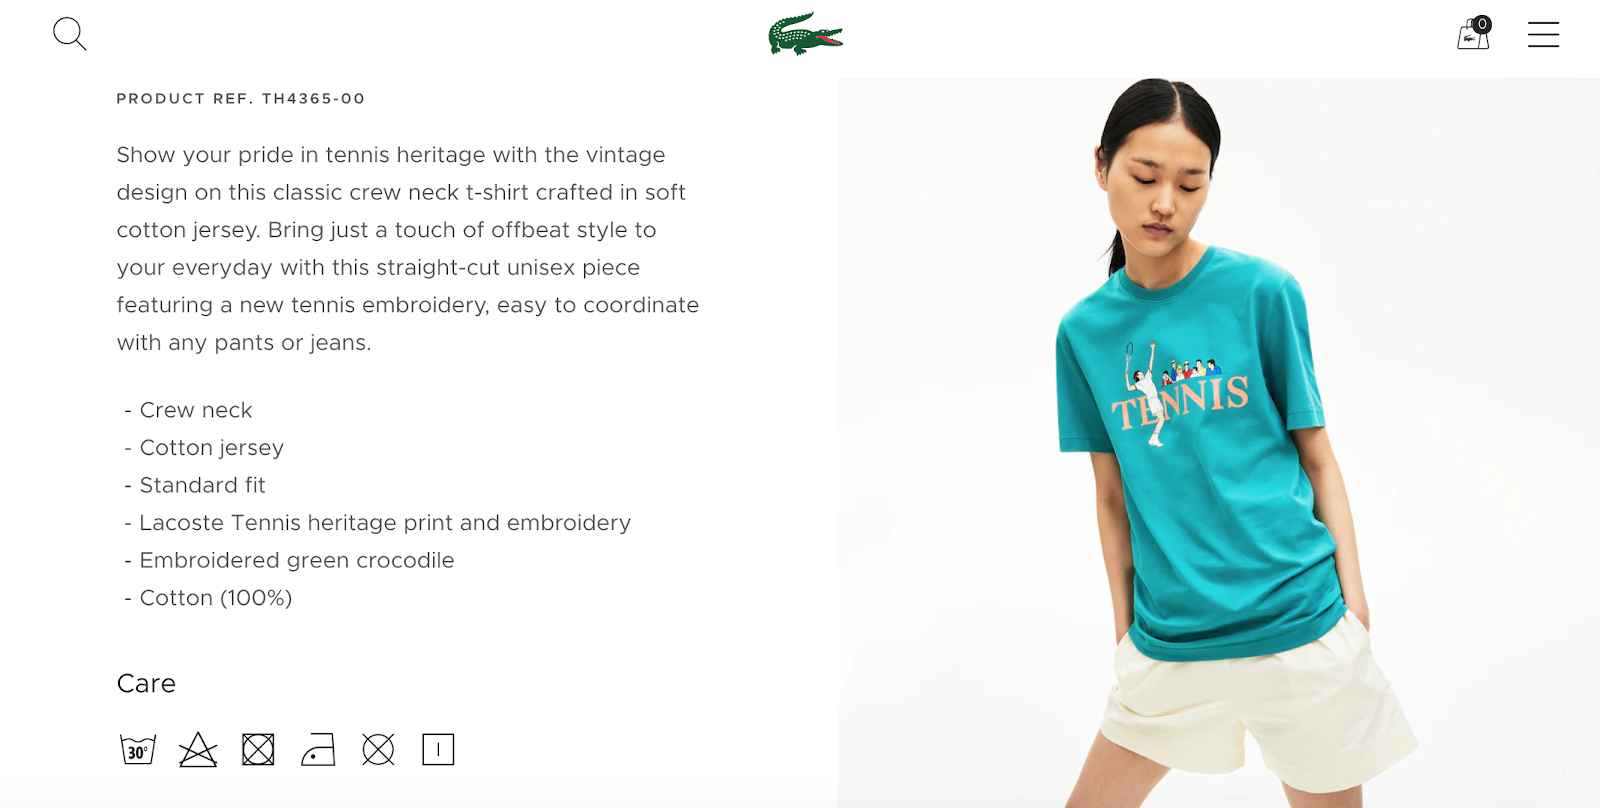 best product detail page examples lacoste 2